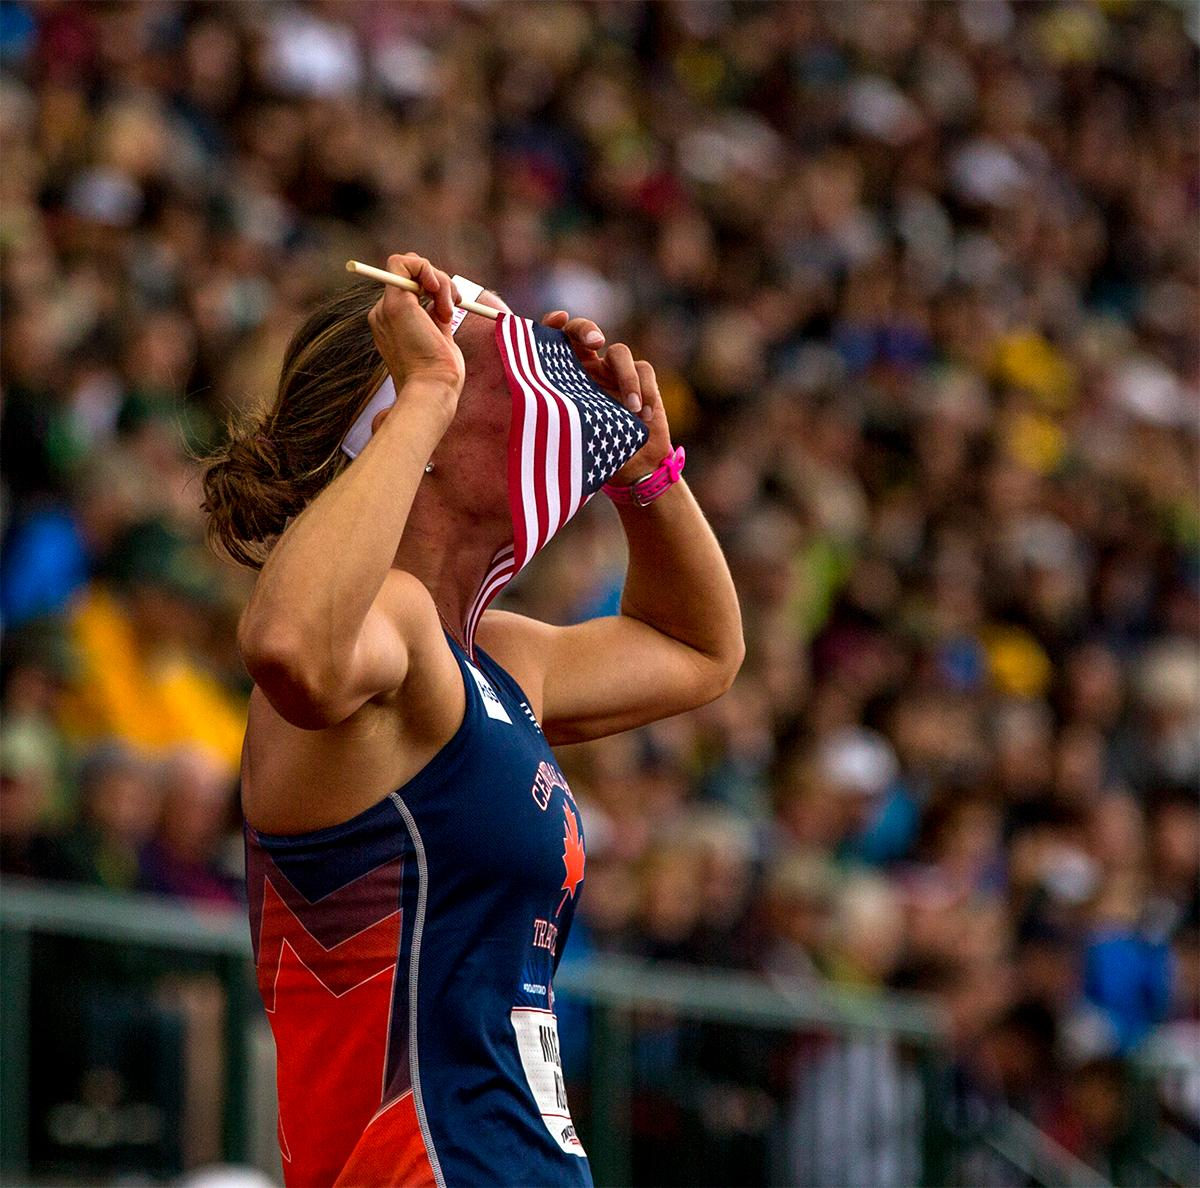 Central Park TC's Heather Miller-Koch will be on her way to Rio soon after winning the 800 meters portion of the heptathlon and finishing second overall. Photo by August Frank, Oregon News Lab